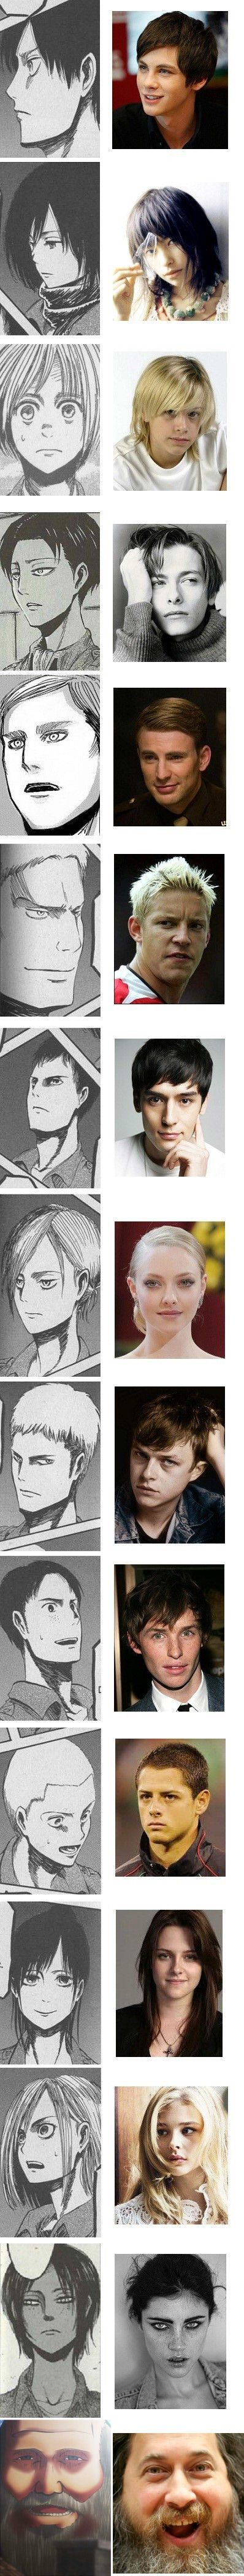 "Japanese Fans Suggest Foreign Cast for Live-Action ""Attack on Titan"" (and it is PERFECT!)"